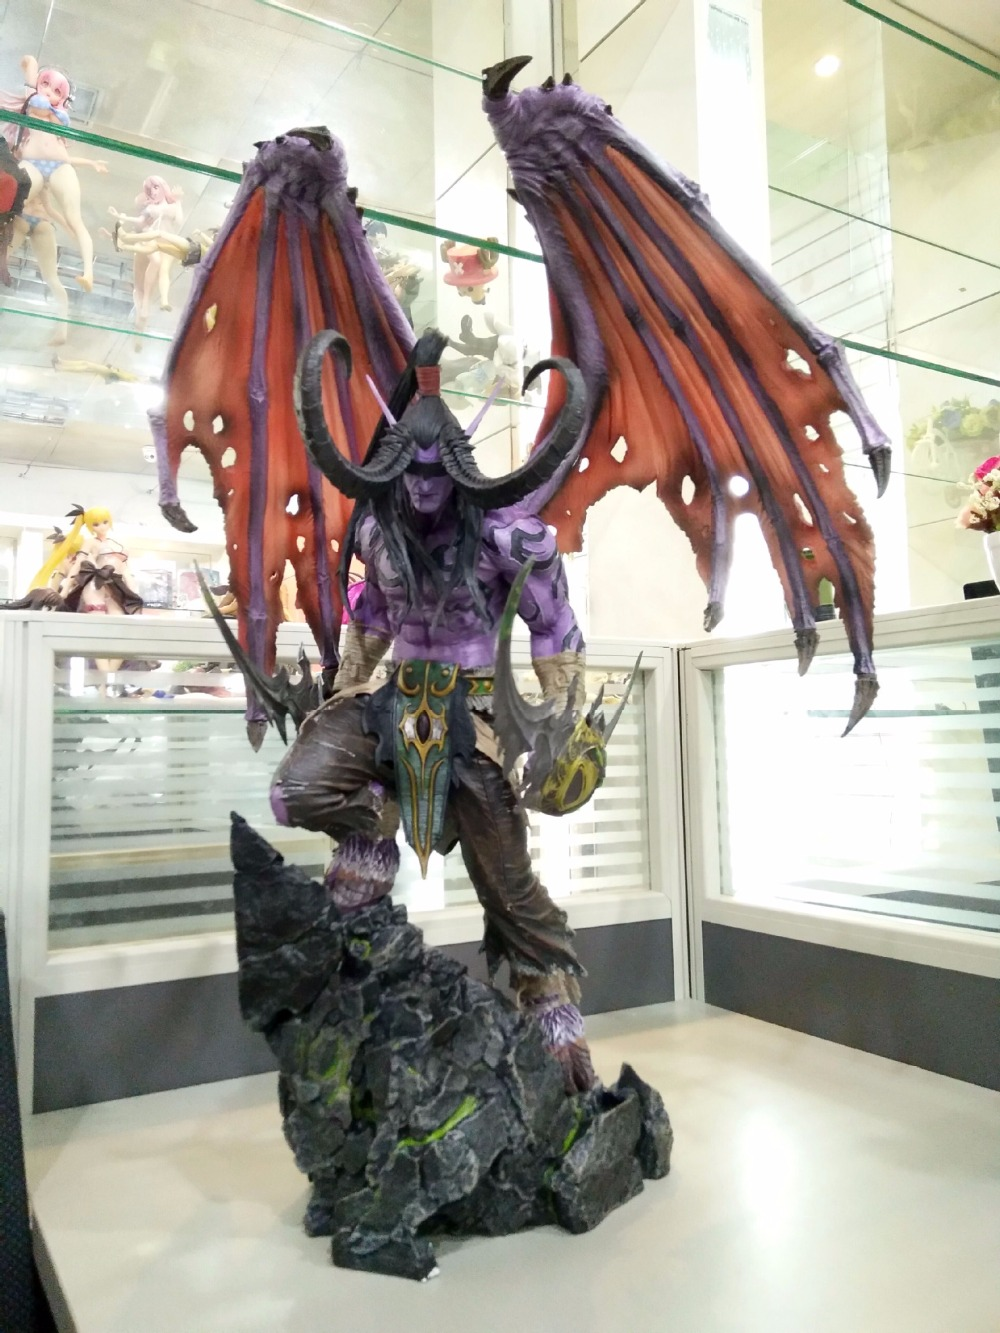 [TOP] Limited Large size 60cm WOW Illidan gk resin statue figure collection model Original box best gift[TOP] Limited Large size 60cm WOW Illidan gk resin statue figure collection model Original box best gift